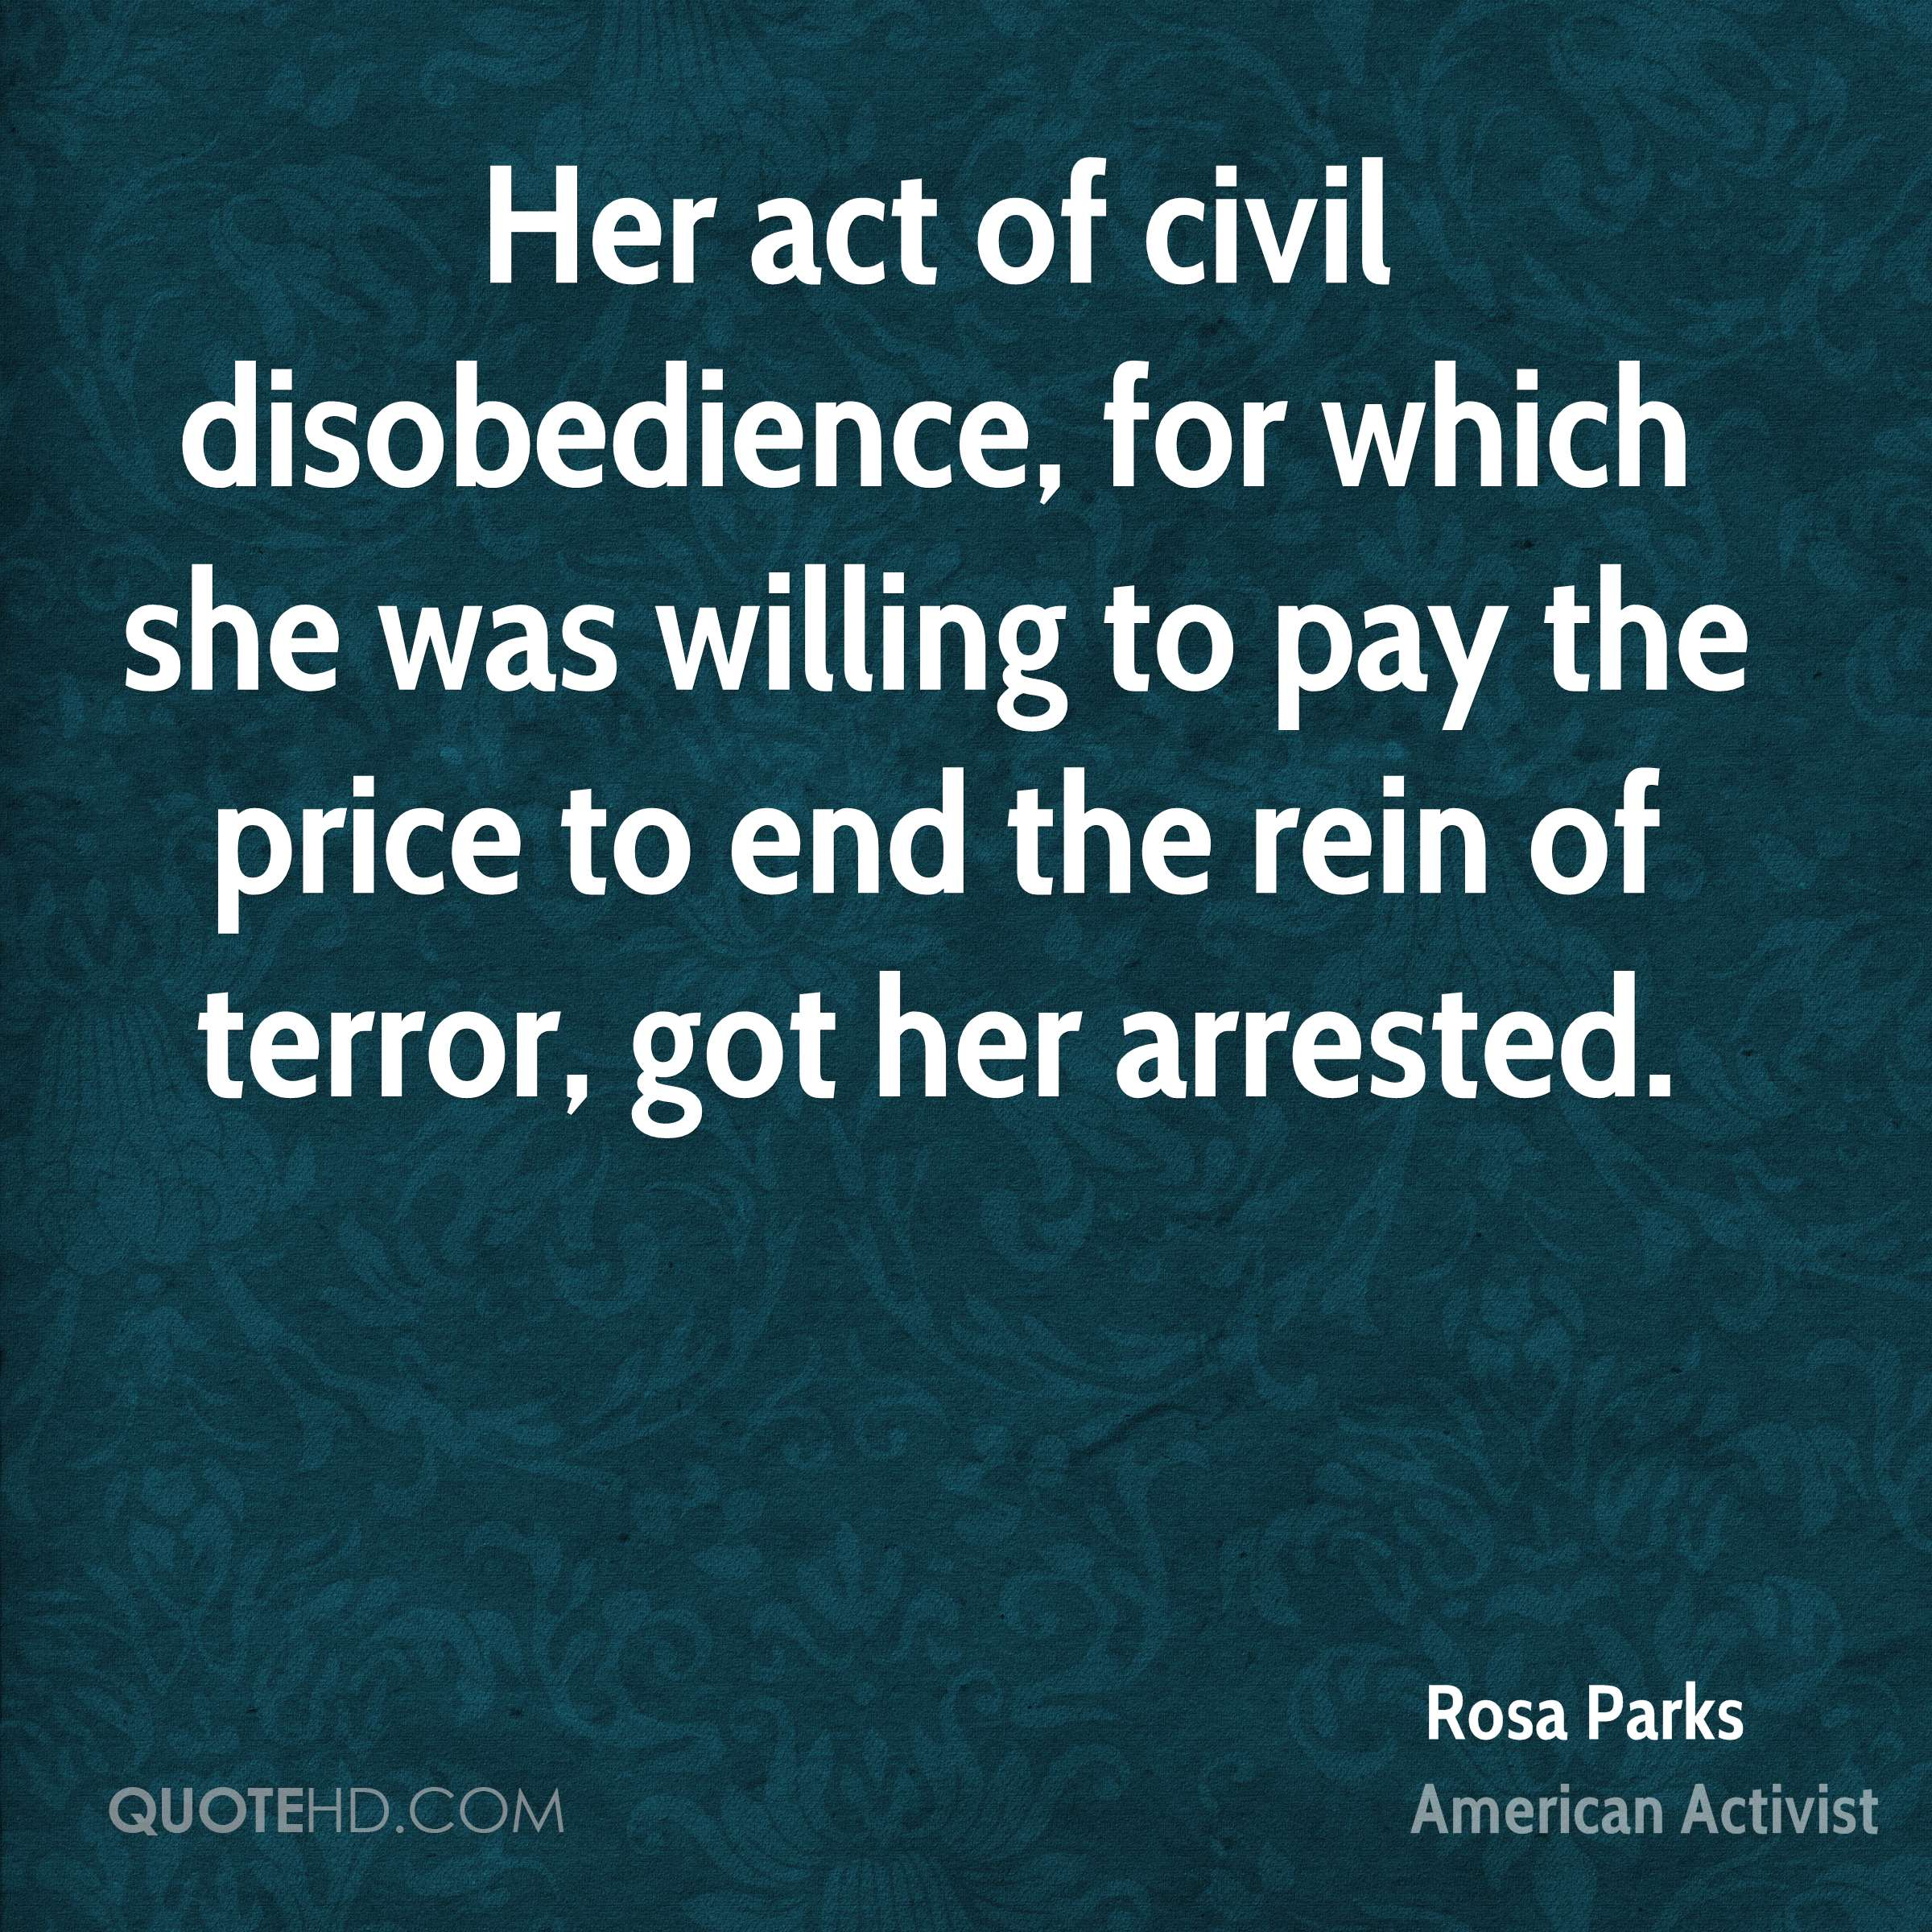 Her act of civil disobedience, for which she was willing to pay the price to end the rein of terror, got her arrested.